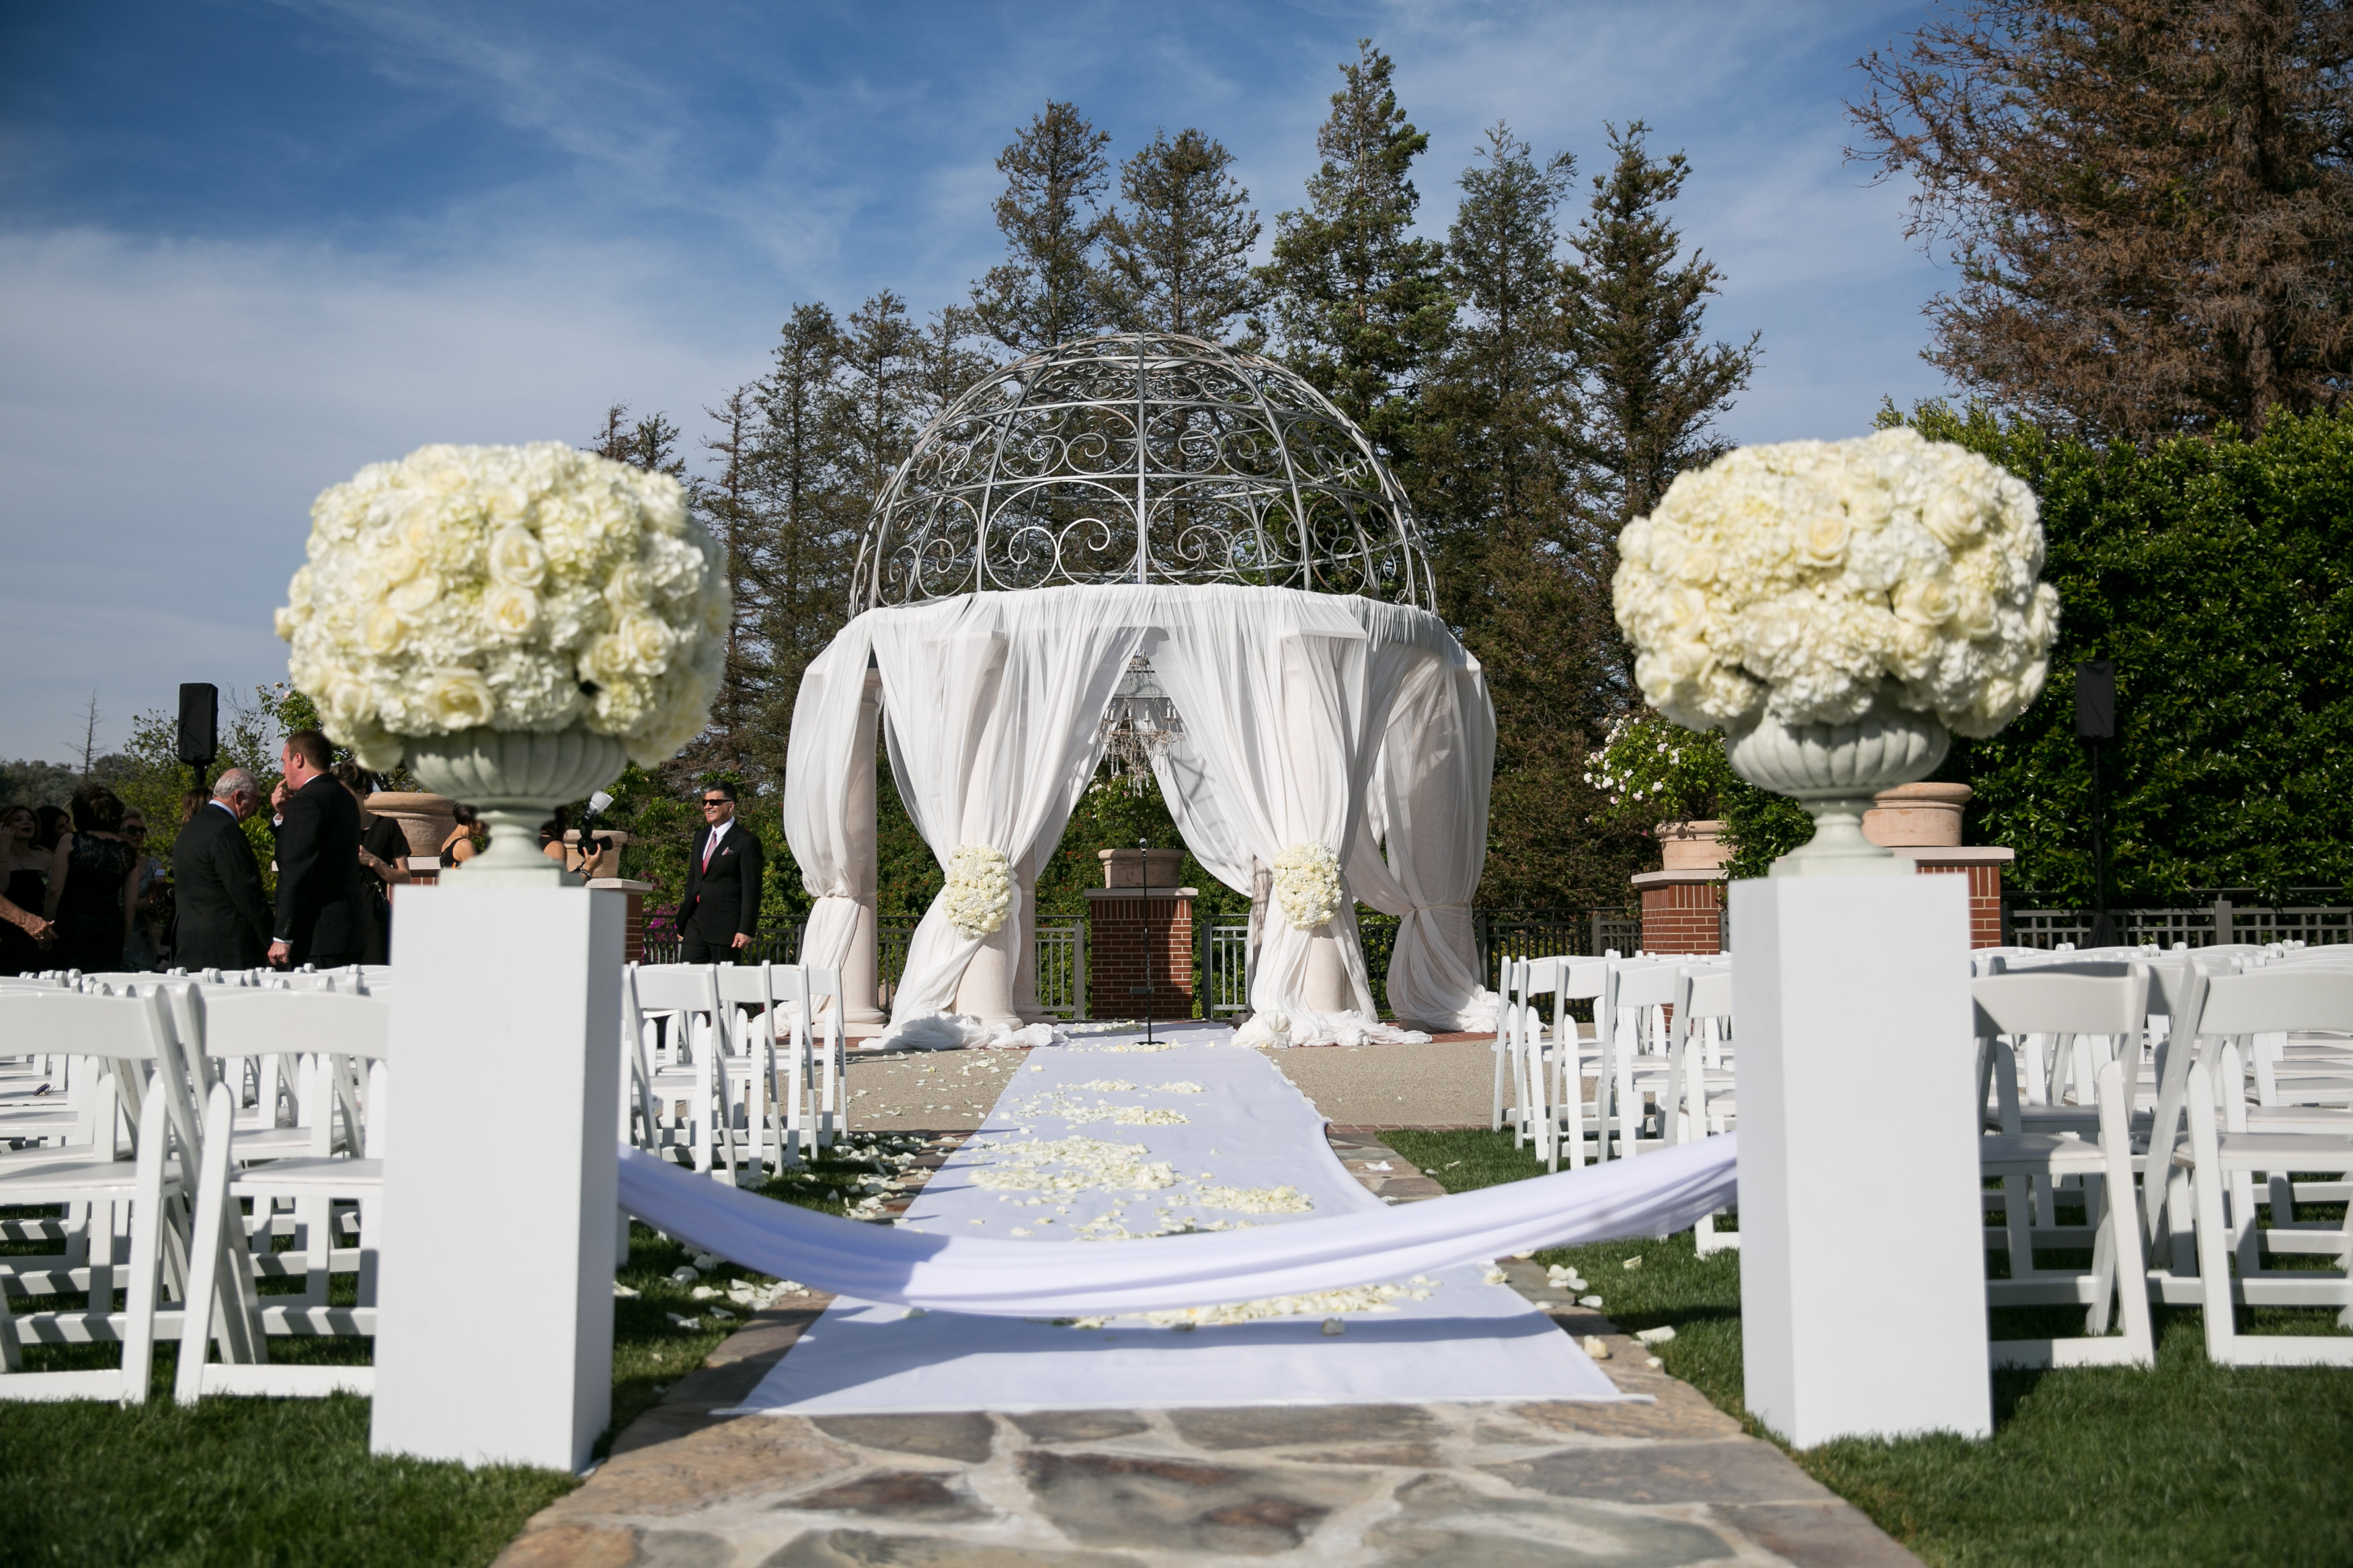 Four seasons westlake gazebo draping wedding ceremony